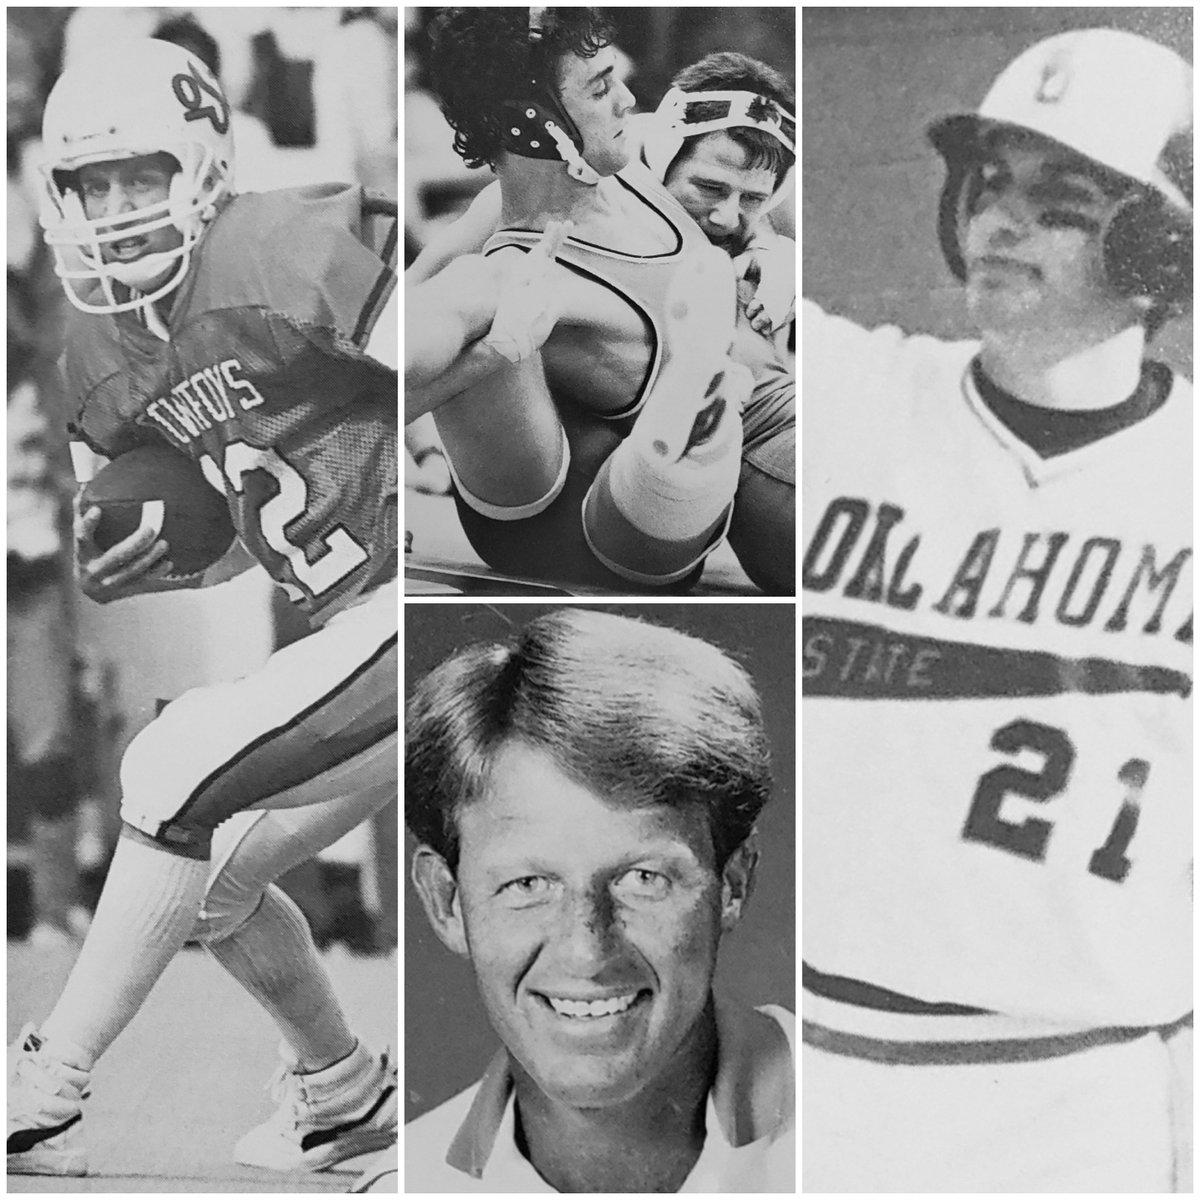 A poster on our message board sent me this today pulled from his 1987 yearbook. Mike Gundy, John Smith, Robin Ventura, and Mike Holder. #okstate <br>http://pic.twitter.com/zoxUS1MvYi